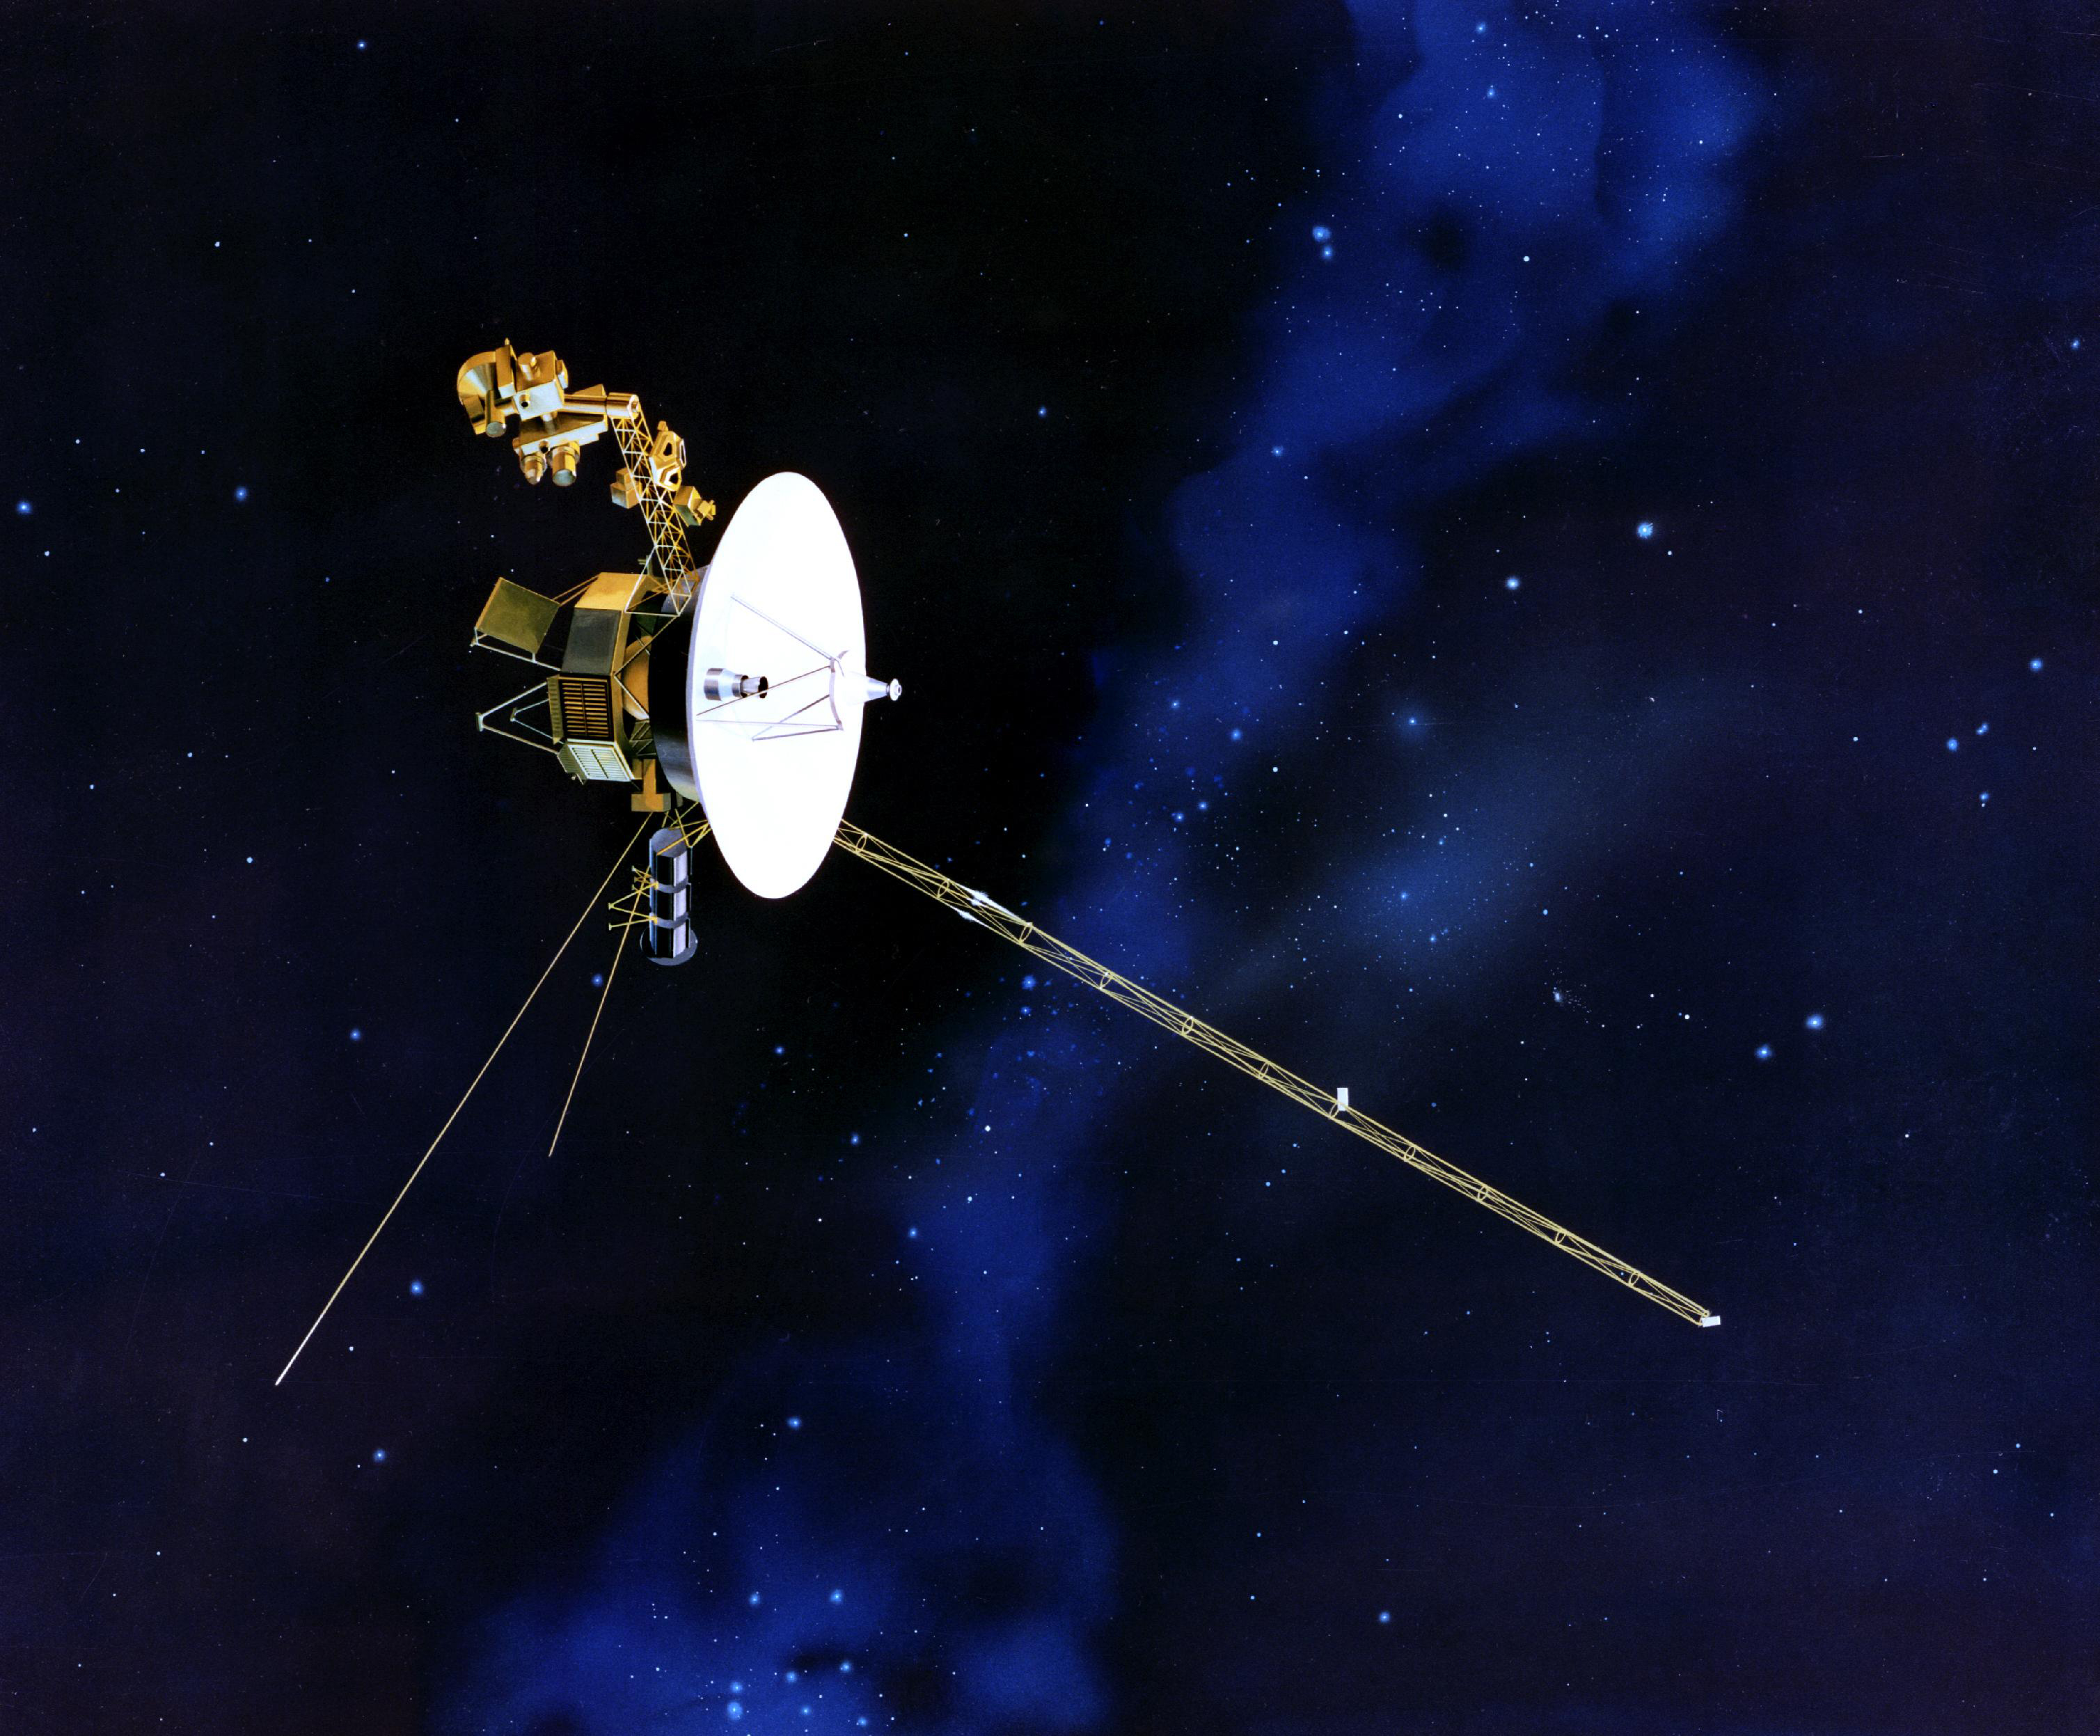 A NASA image of the Voyager probe in space